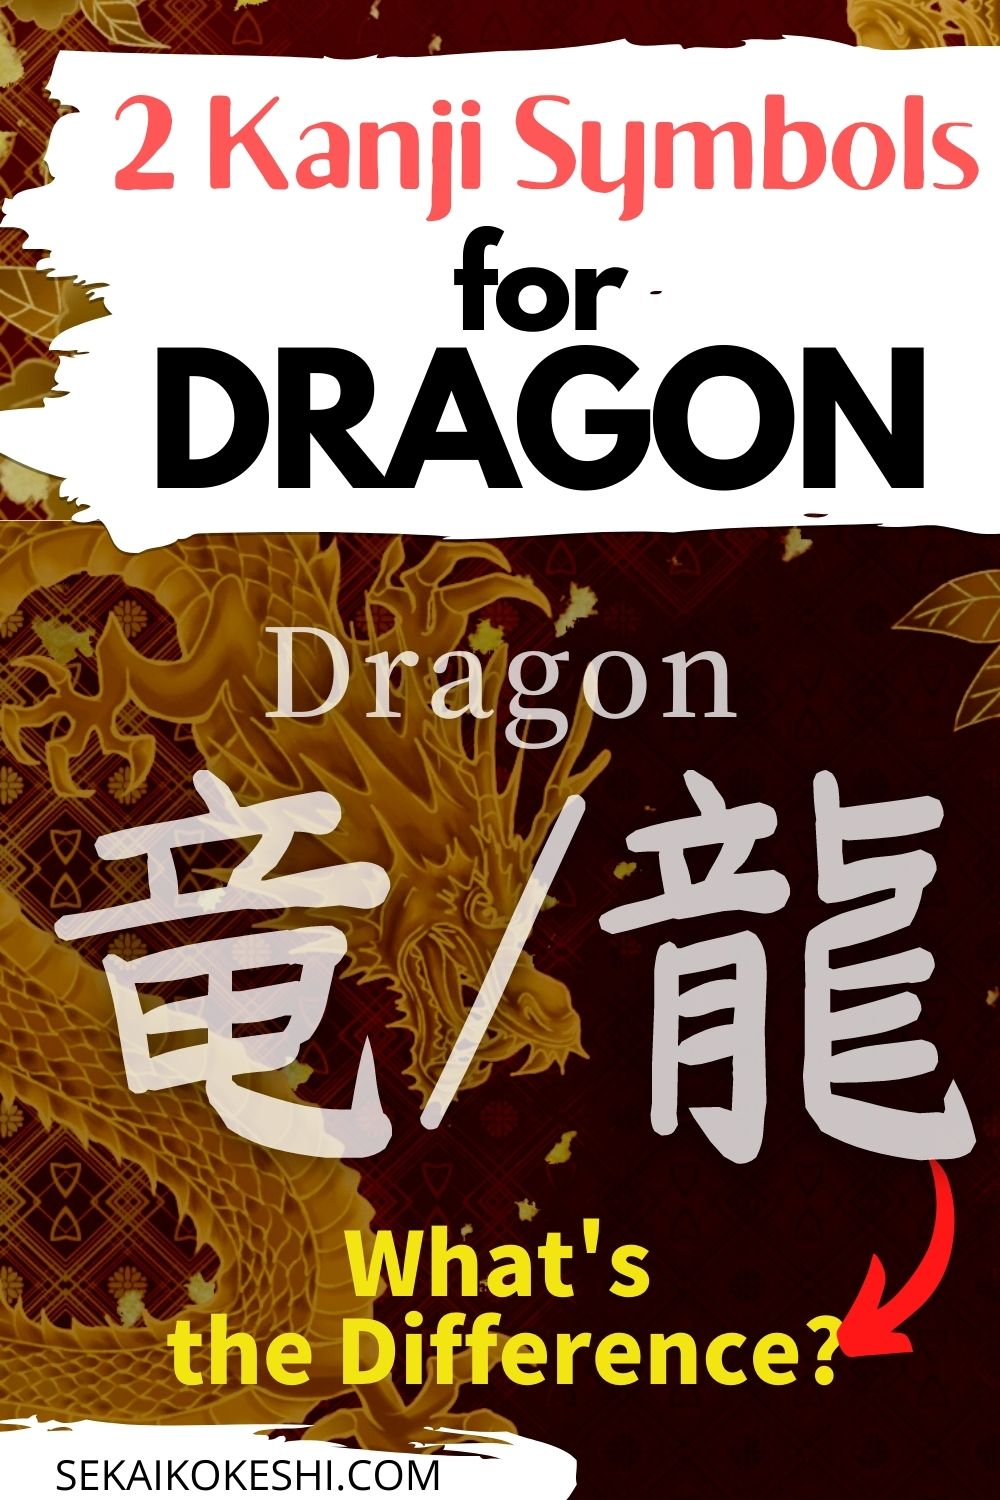 2 kanji symbols for dragon, what's the difference?